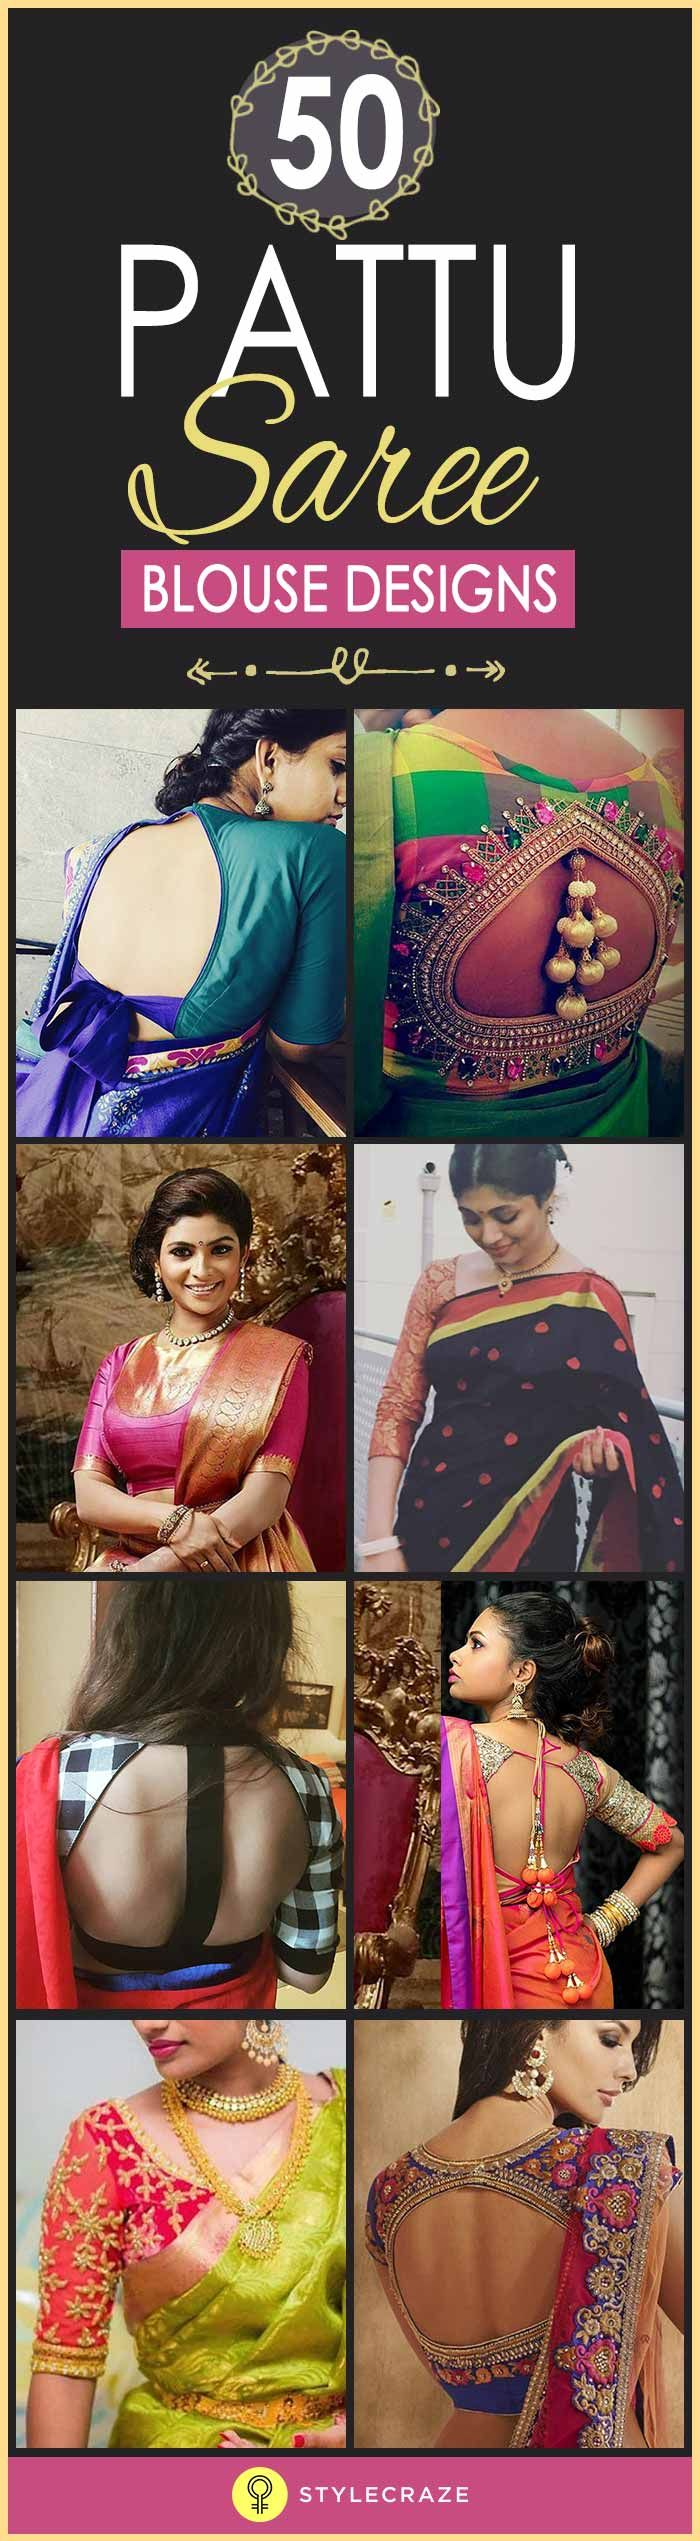 If you are looking for new & latest saree blouse design ideas for your party, fancy, silk or any other sarees, you've come to the right place. The Catalogue is here